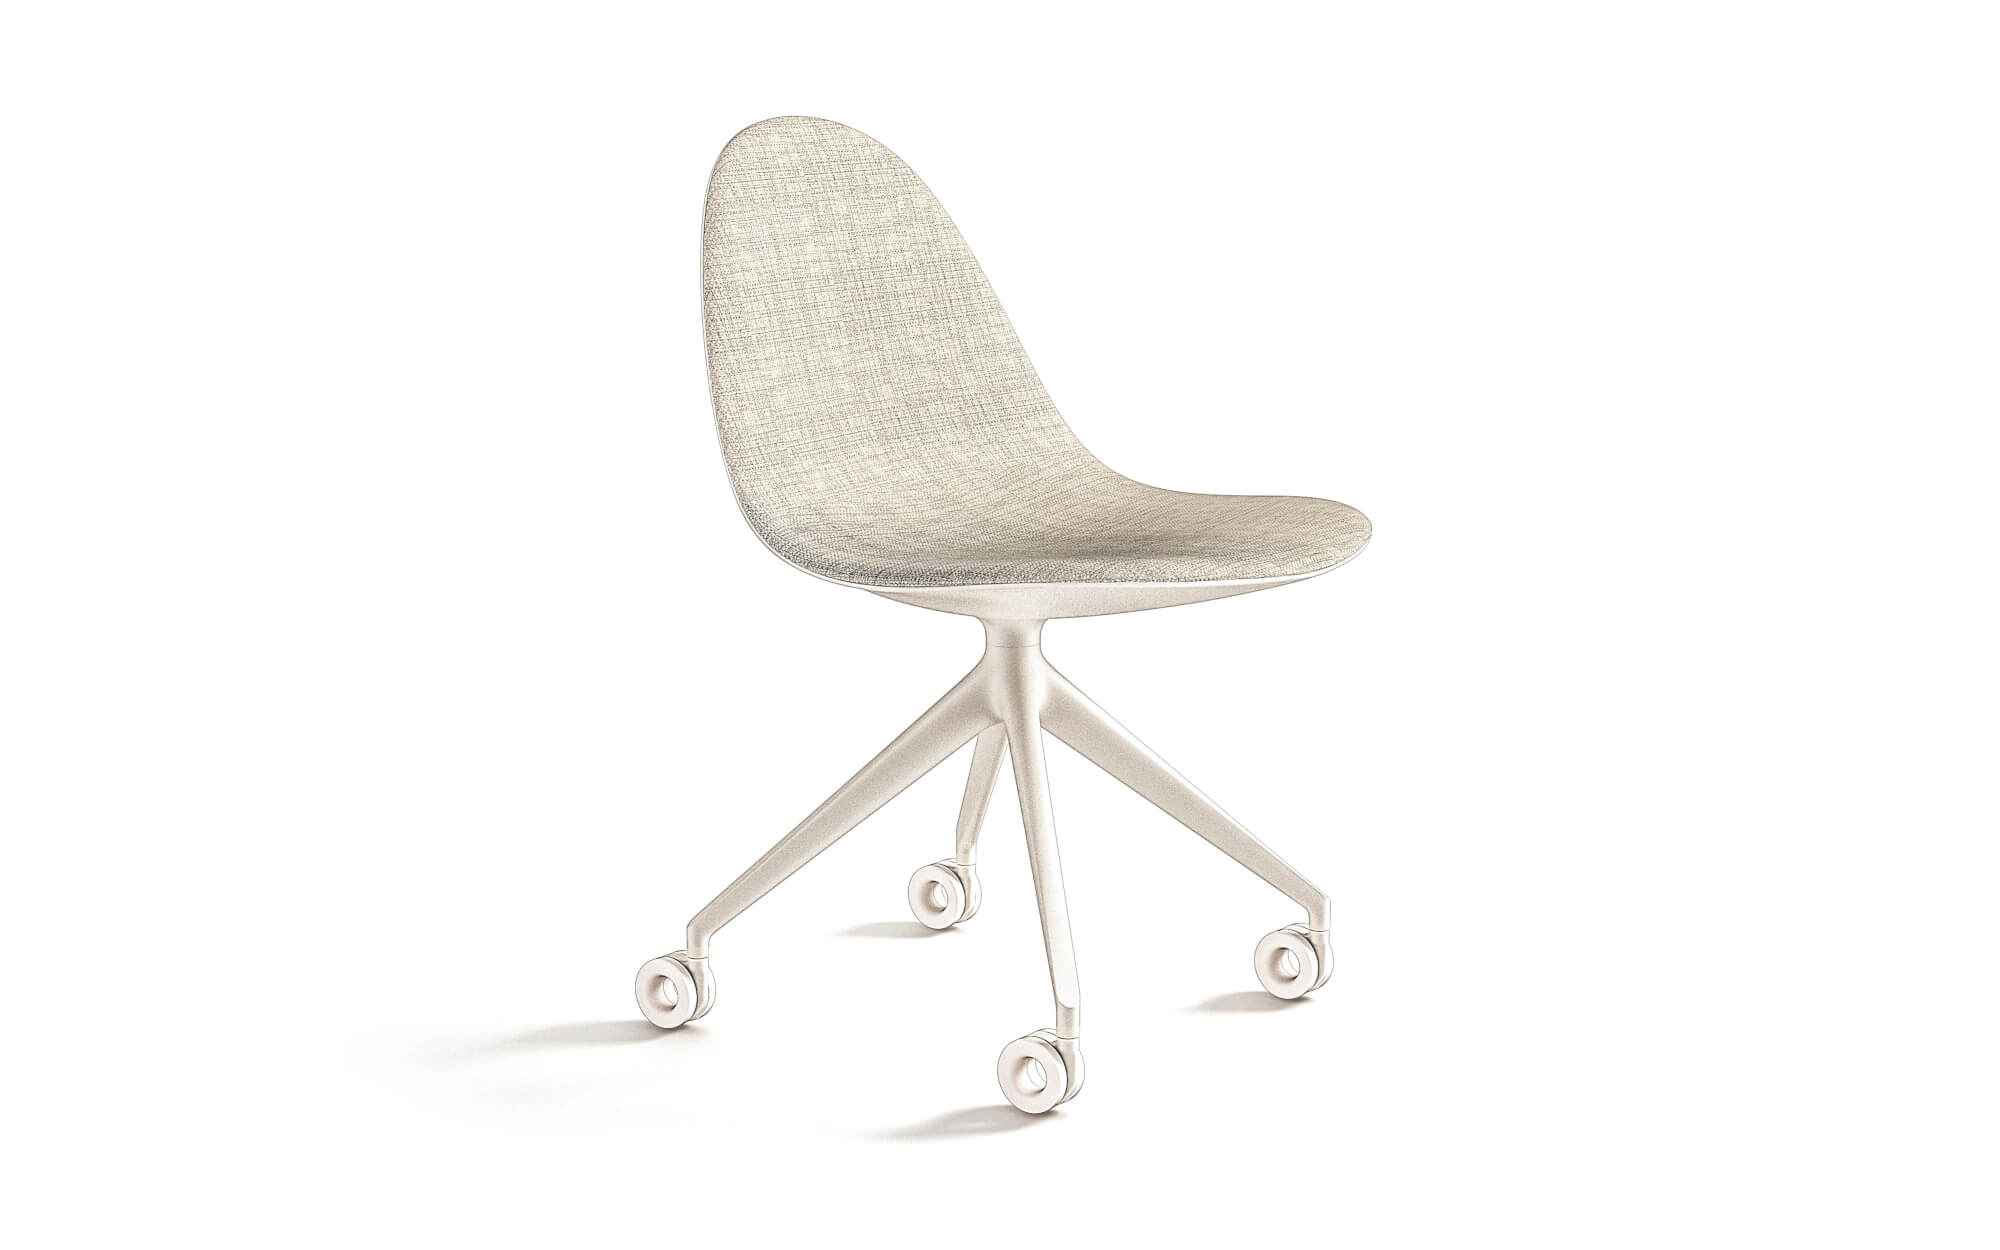 CAPRICE & PASSION, chairs (CASSINA)